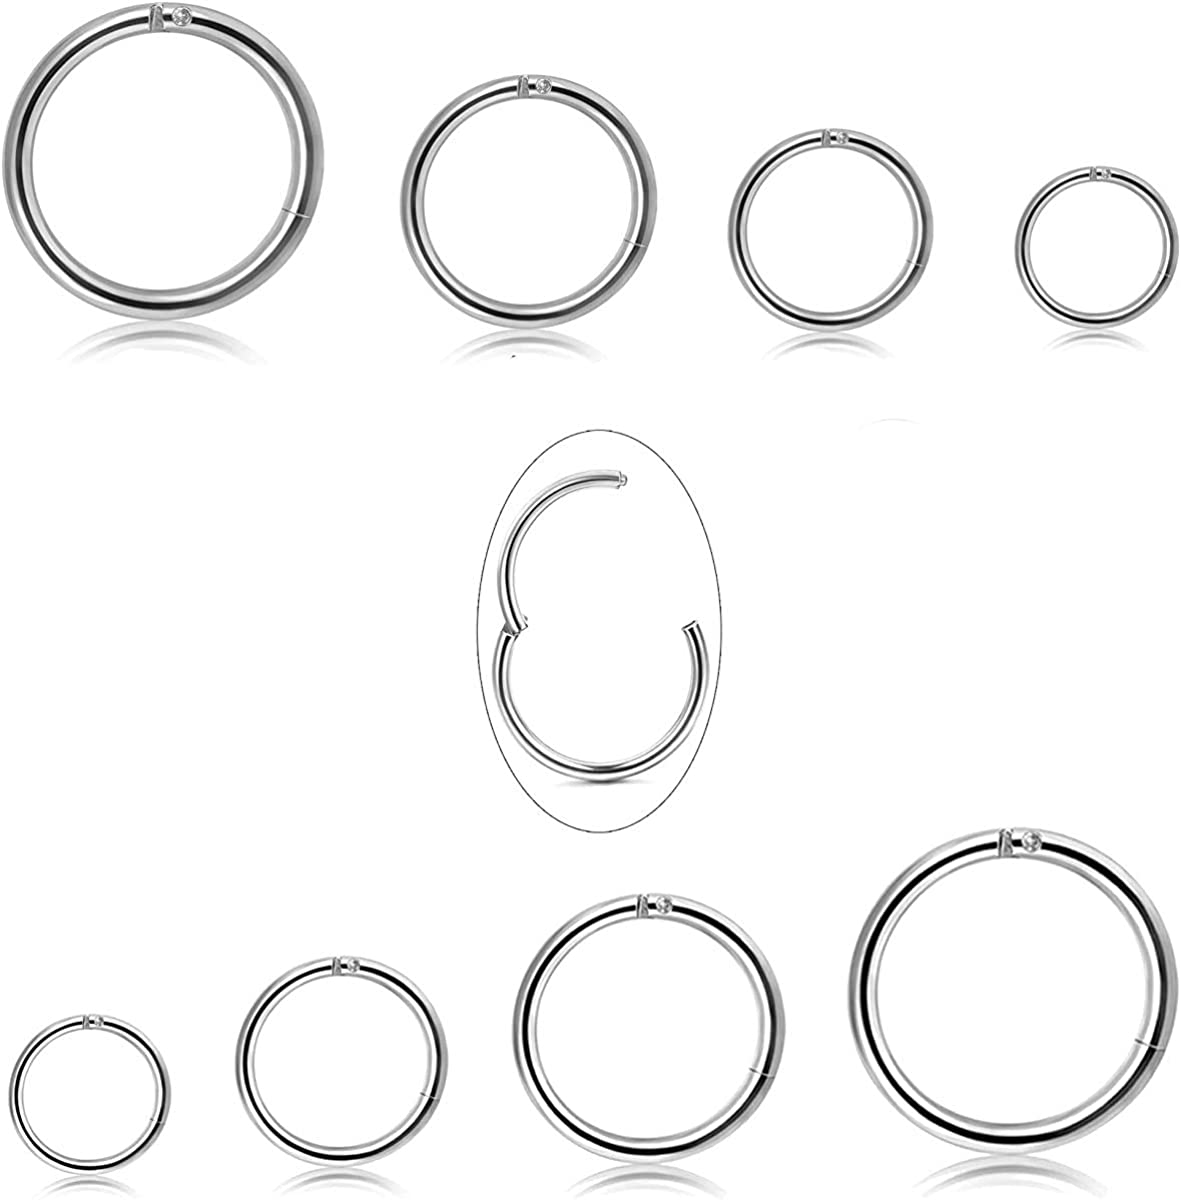 Jstyle 8Pcs 18G Stainless Steel Hinged Clicker Segment Nose Ring Hoop Piercing for Men Women Cartilage Daith Tragus Sleeper Earrings Improved Clasp 6-12MM